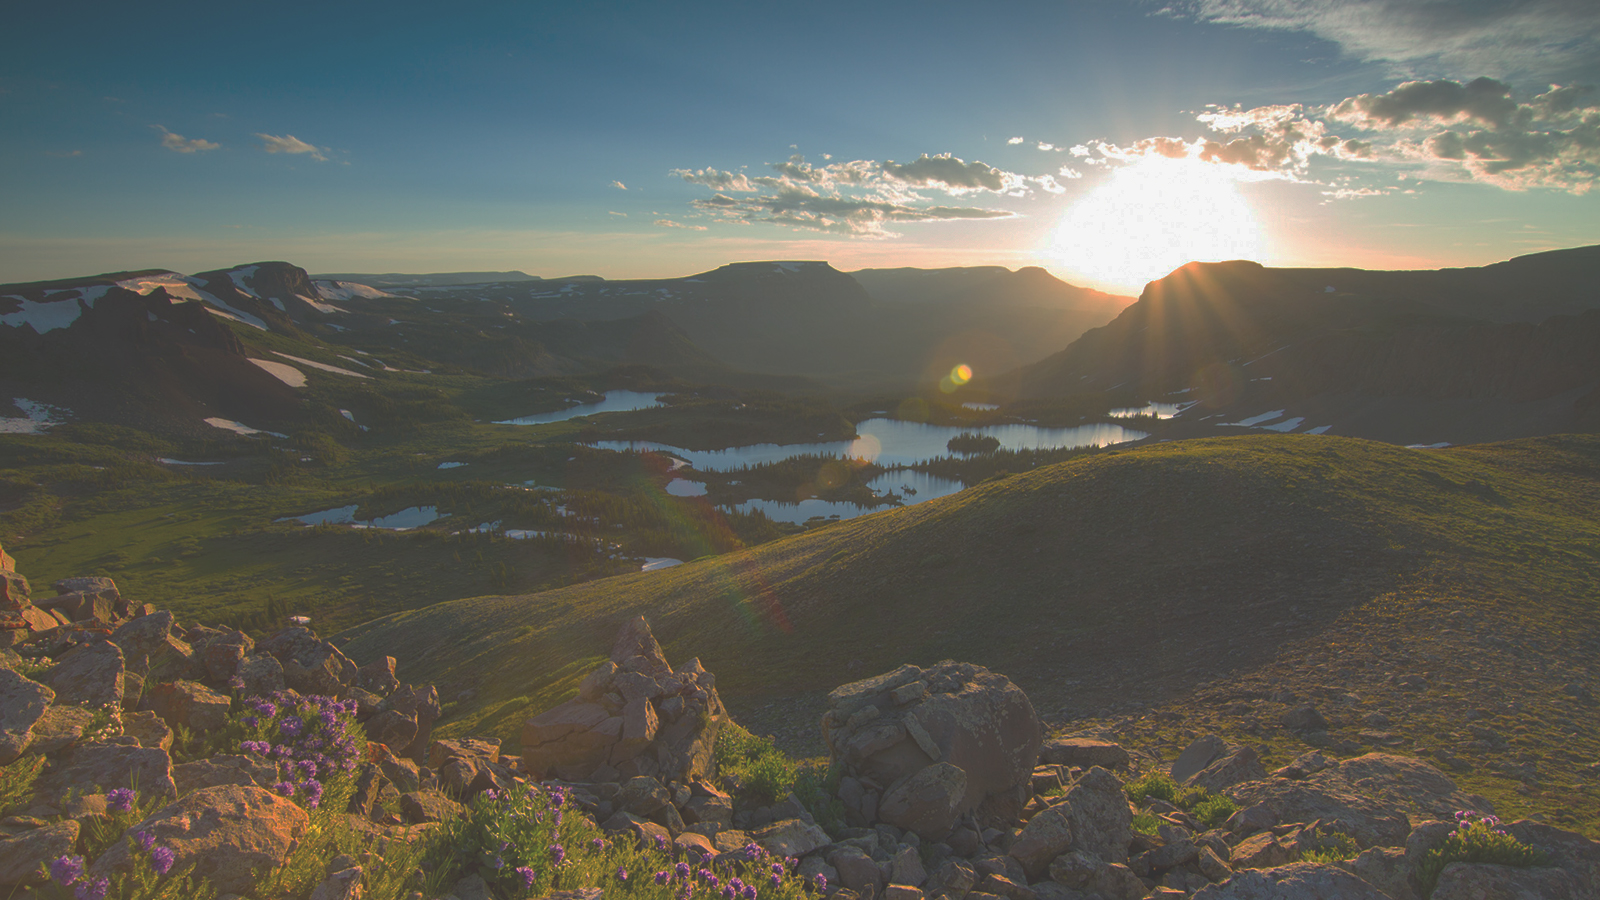 DONATE TO THE TRAIL MAINTENANCE ENDOWMENT FUND - STEAMBOAT SPRINGS, CO